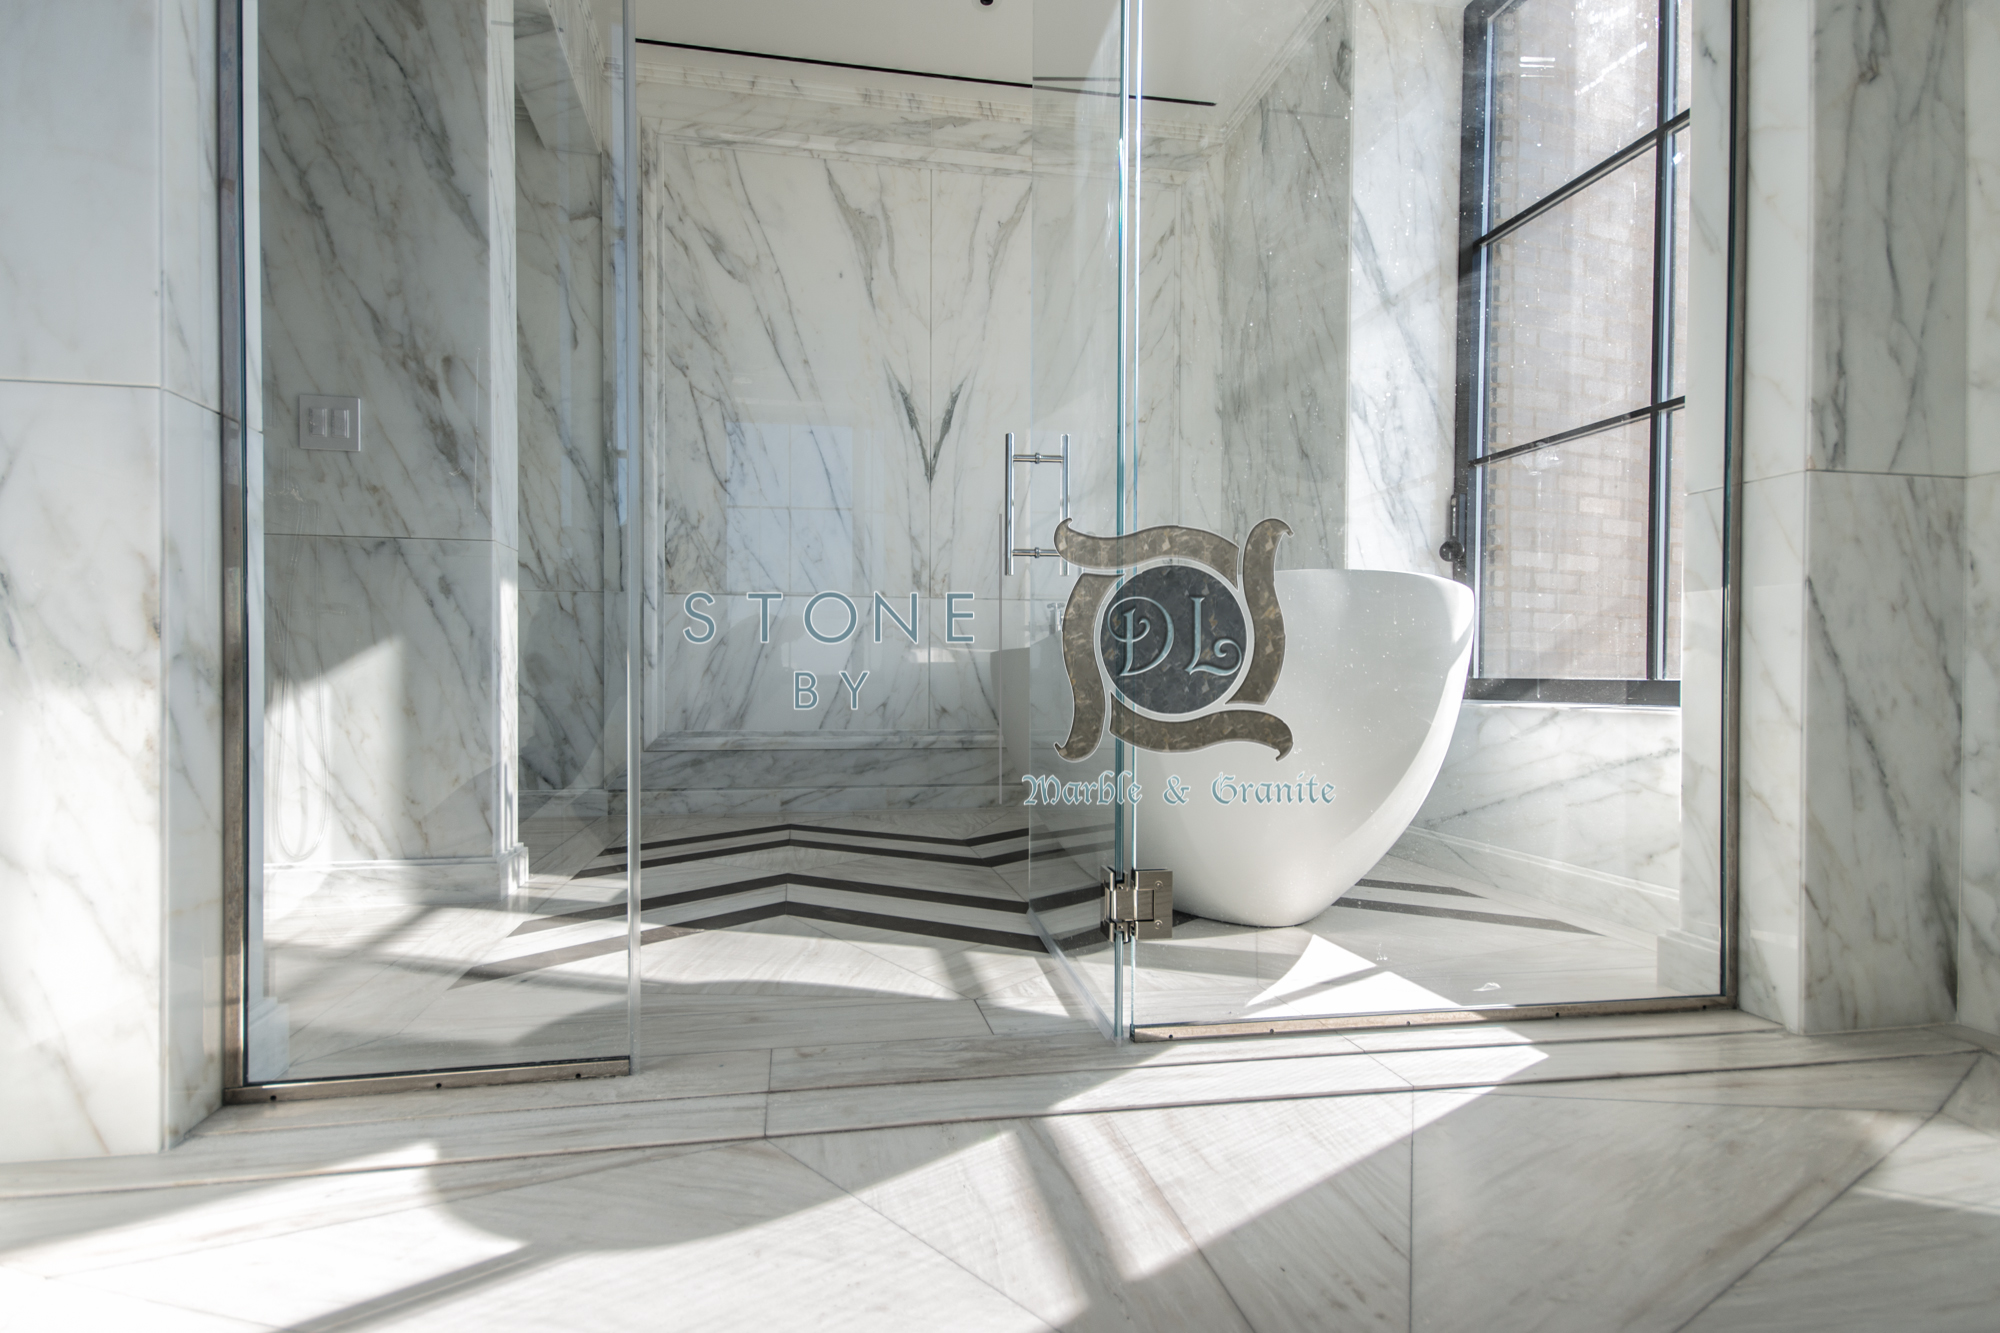 DSC_8202 - Stone by DL Marble and Granite Inc. Walker Tower.jpg